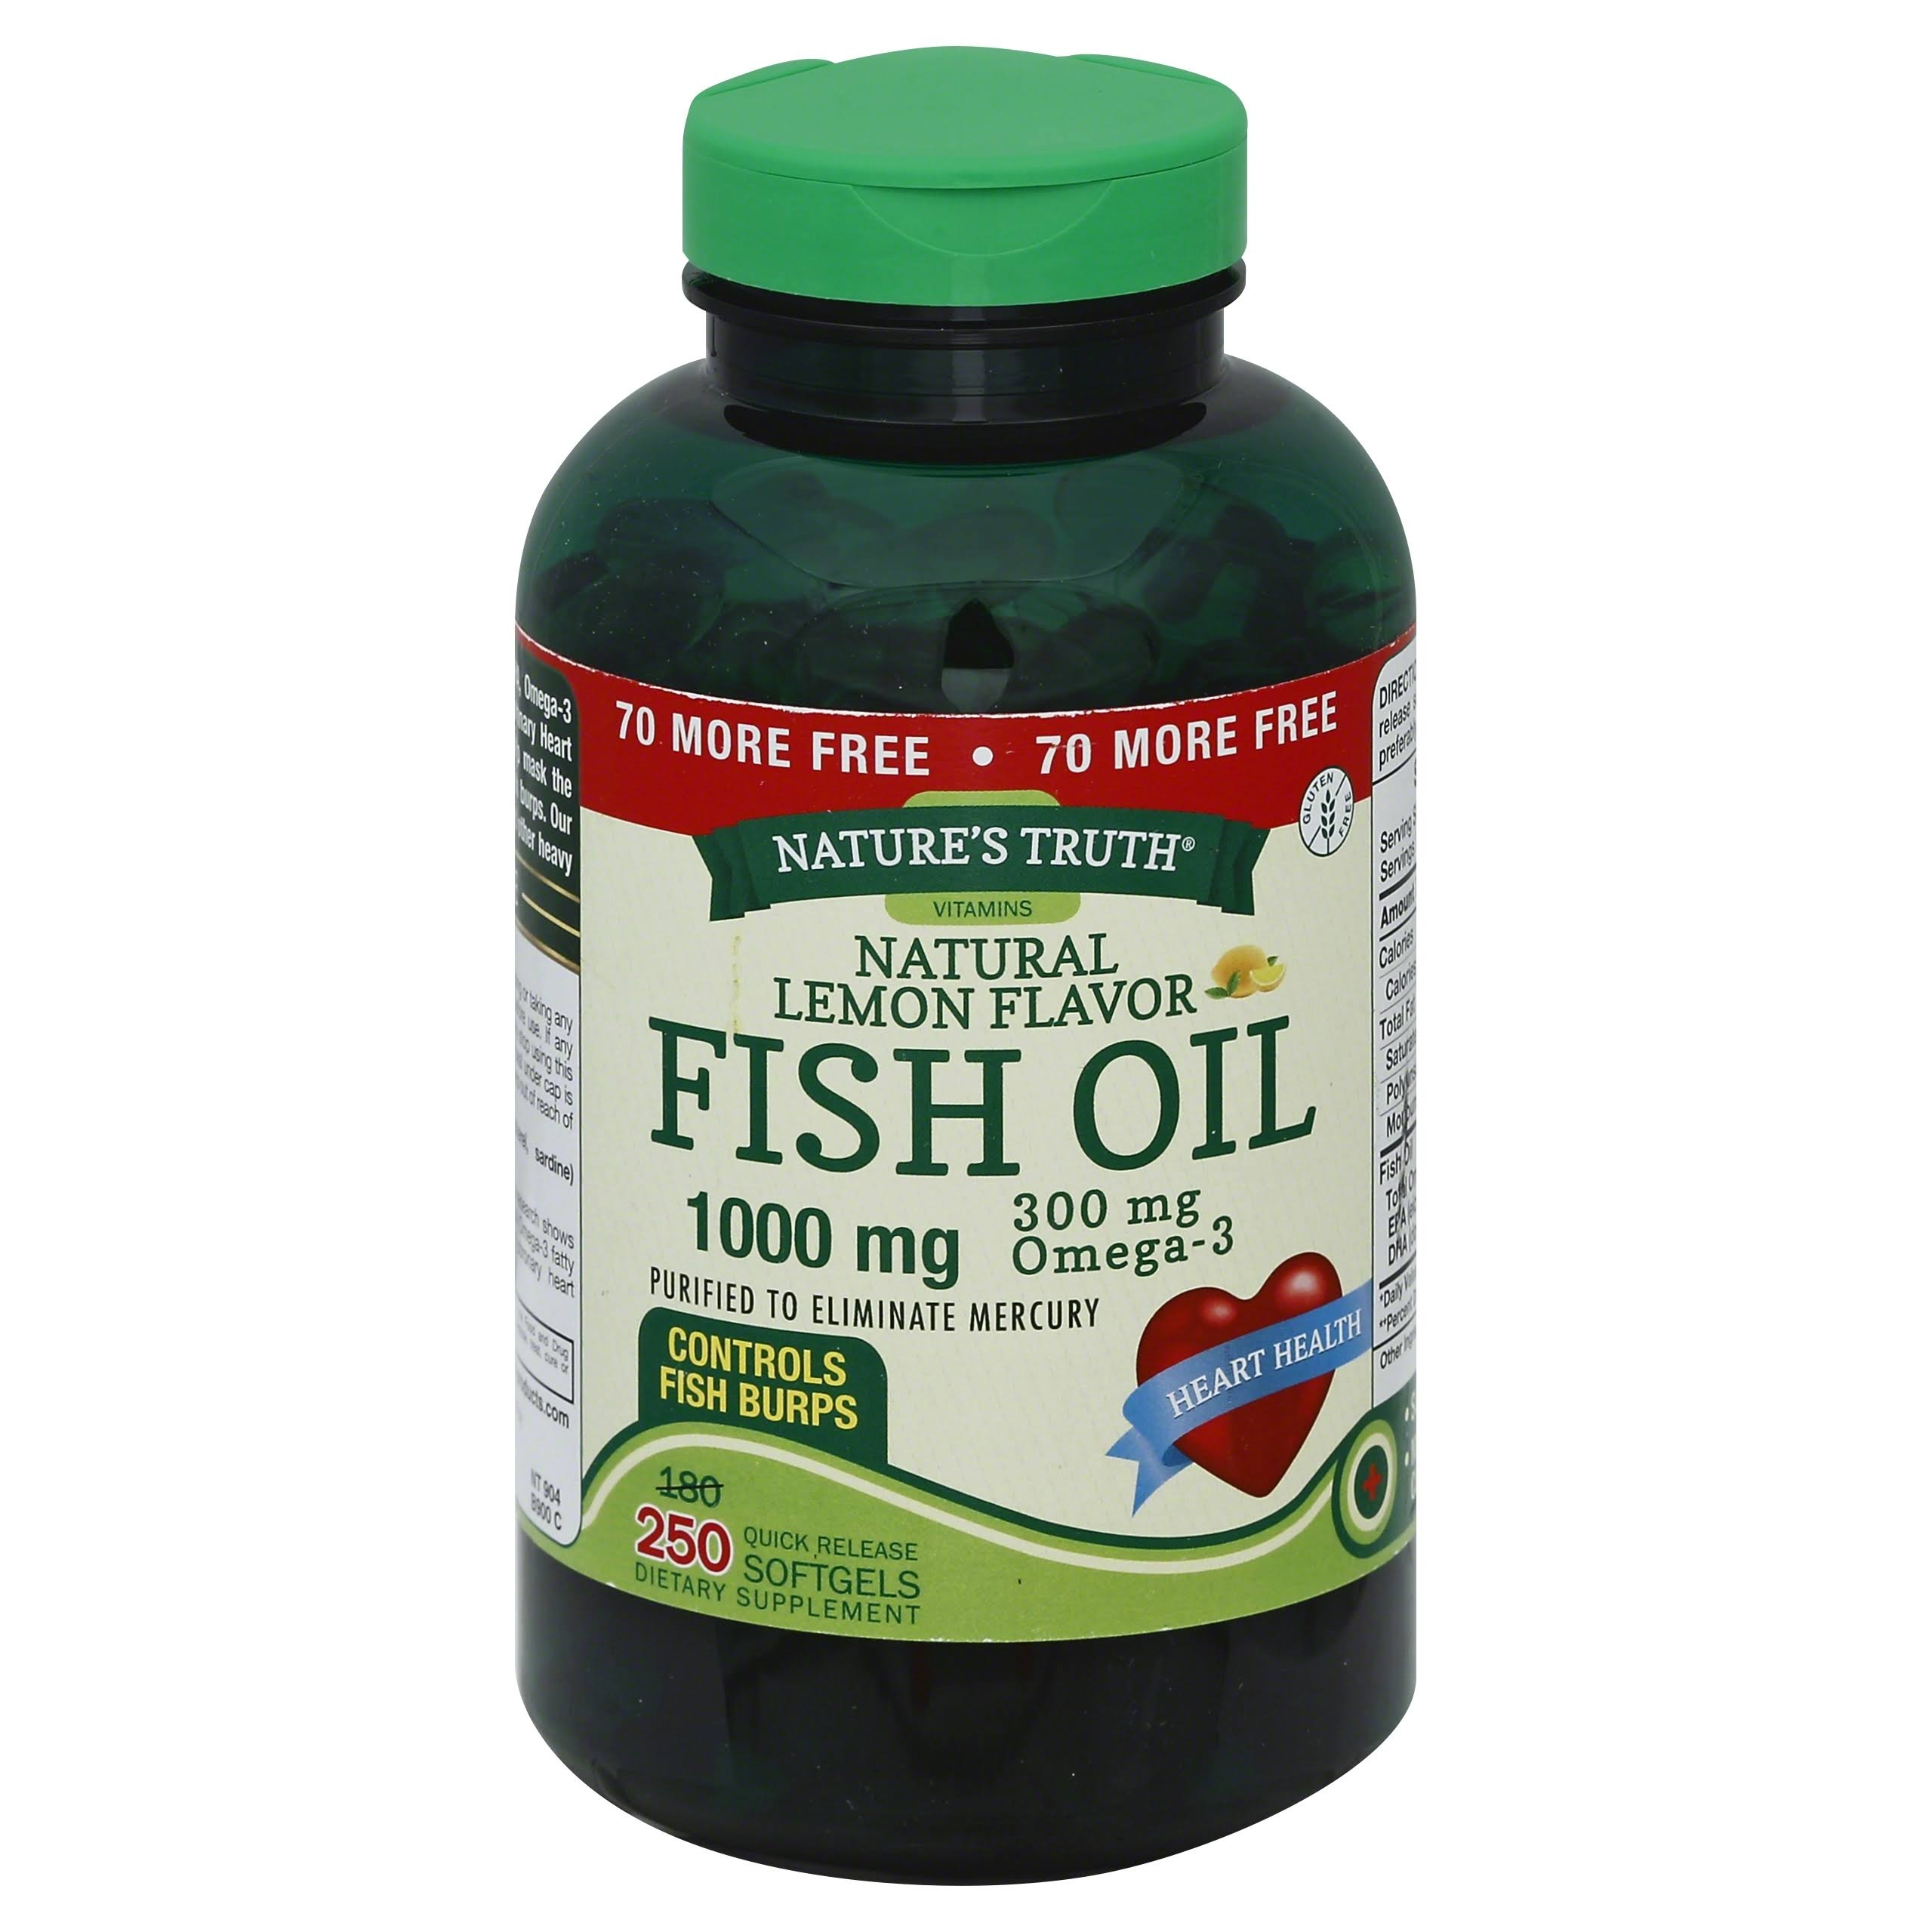 Nature's Truth 1000 Mg Omega 3 Fish Oil Softgels - 250ct, Lemon Flavor